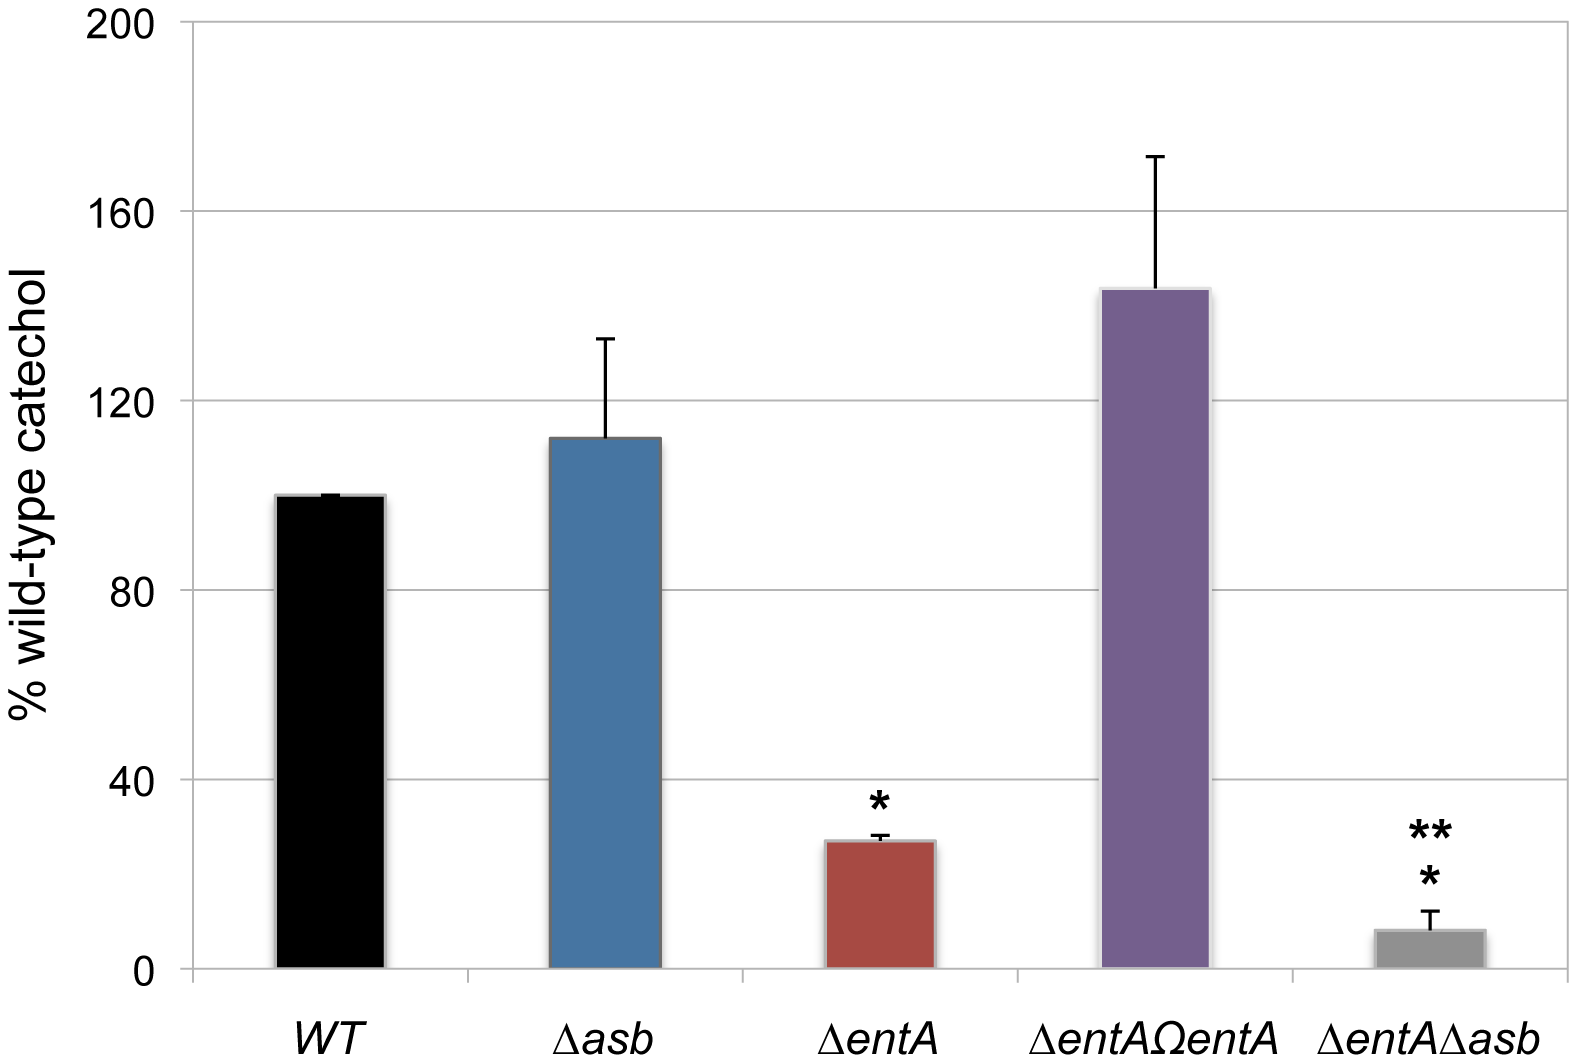 Production of catechol siderophores in <i>Δasb</i> and <i>ΔentA</i> mutants.